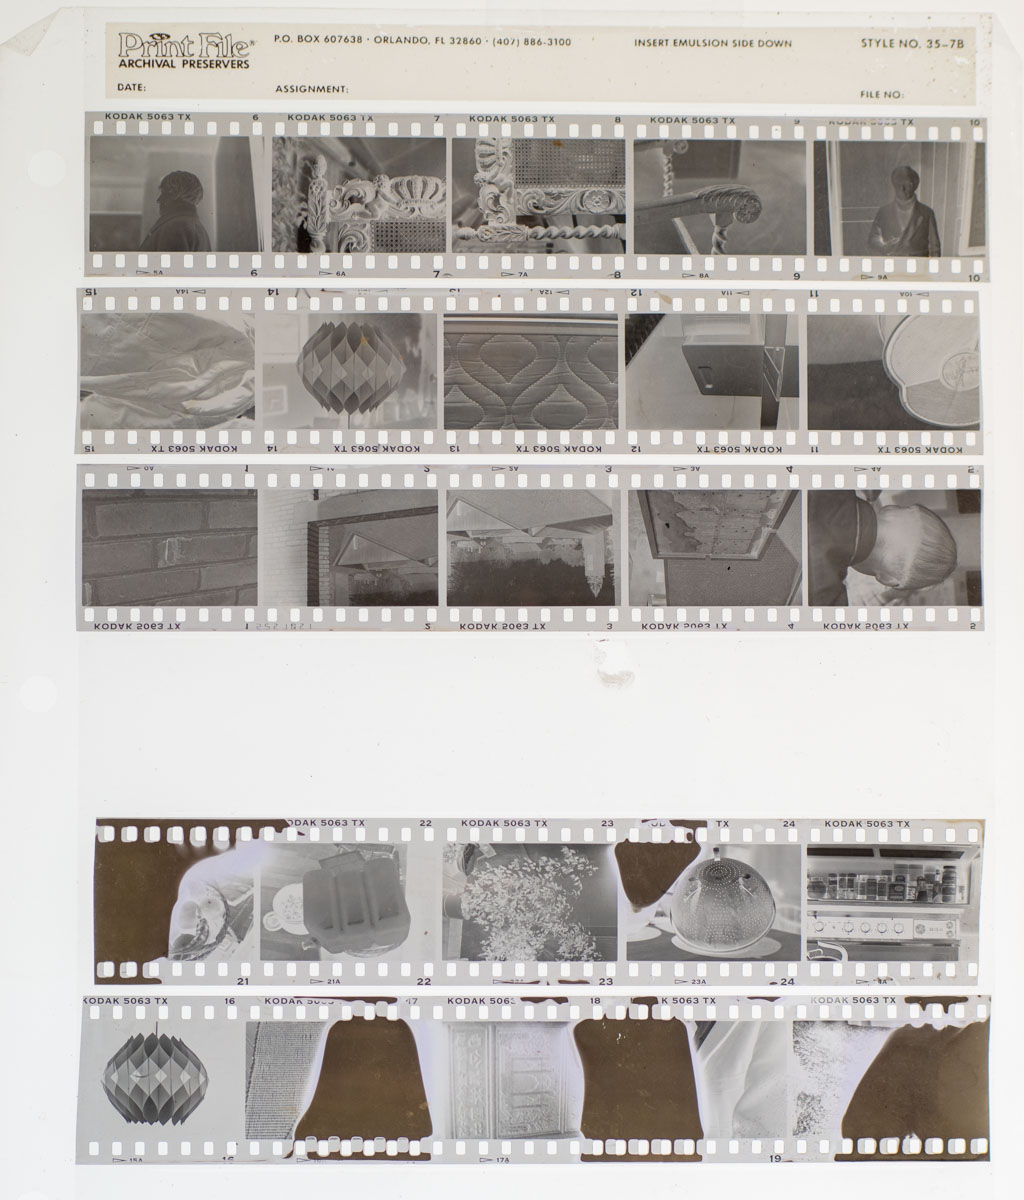 Contact sheet from my first roll… Of 35mm film (Kodak Tri-X 400) - Gregory W Brown 2